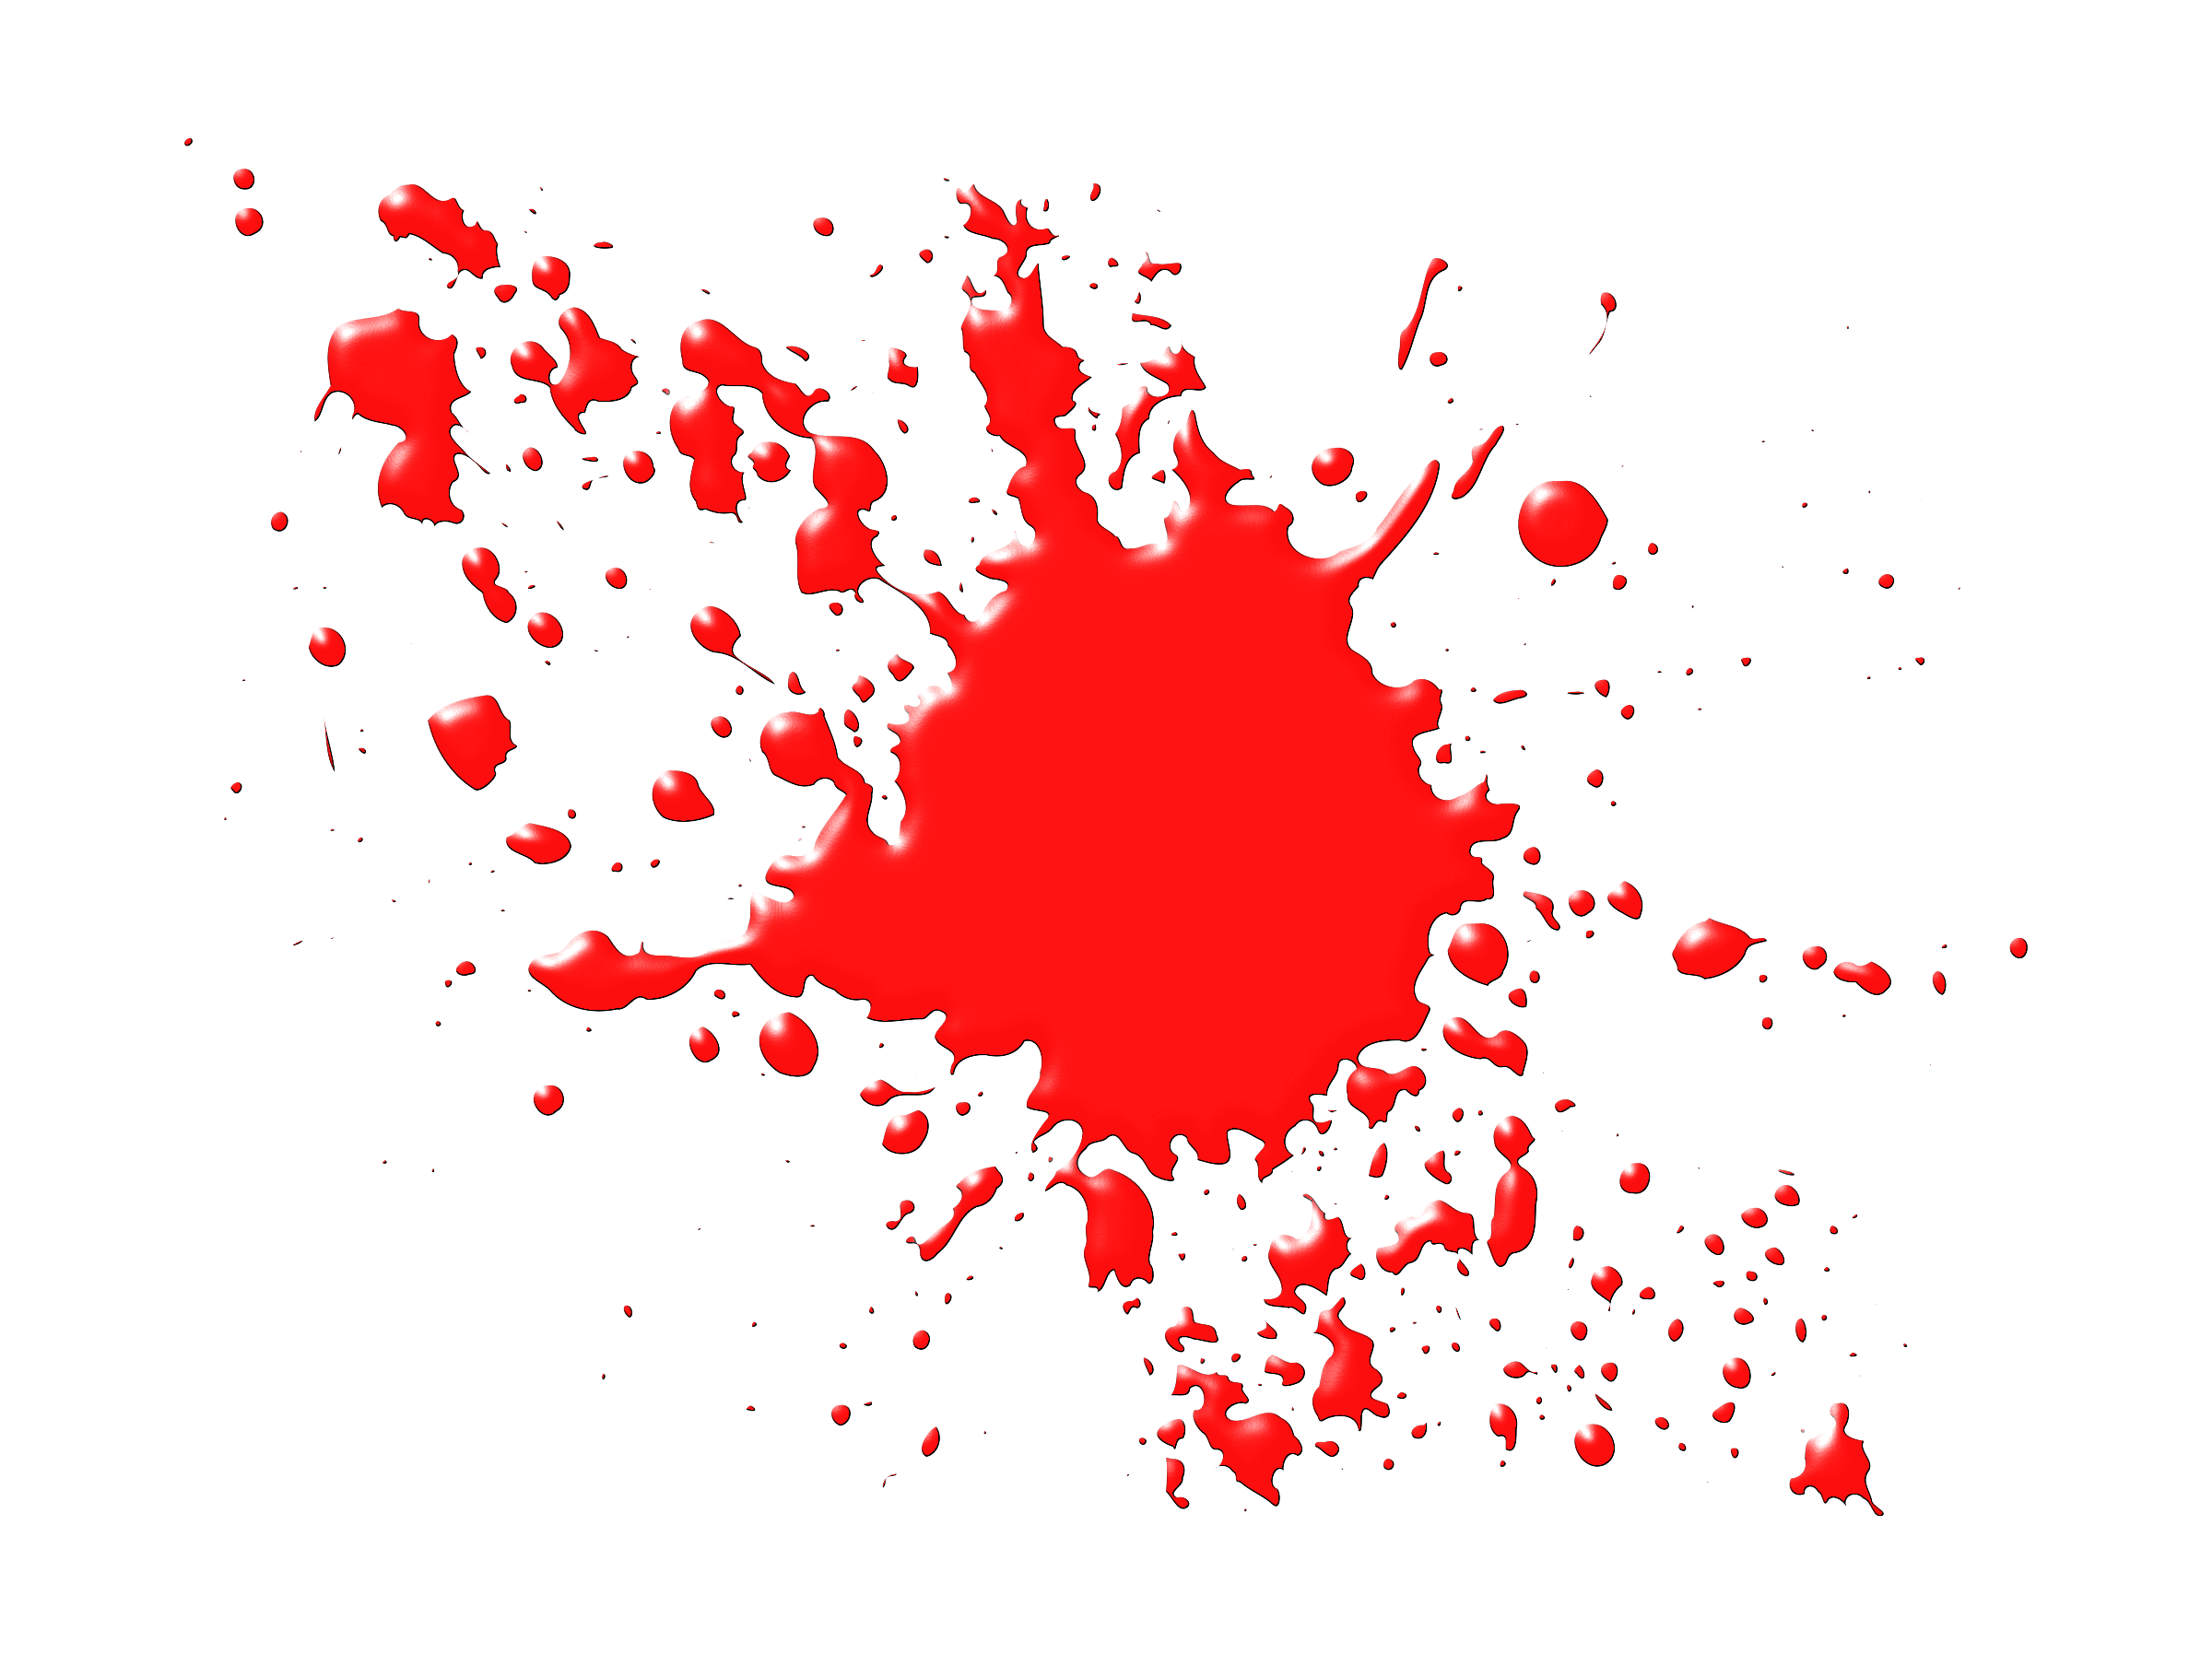 Blood Splatter Png Viewing Gallery-Blood Splatter Png Viewing Gallery-6